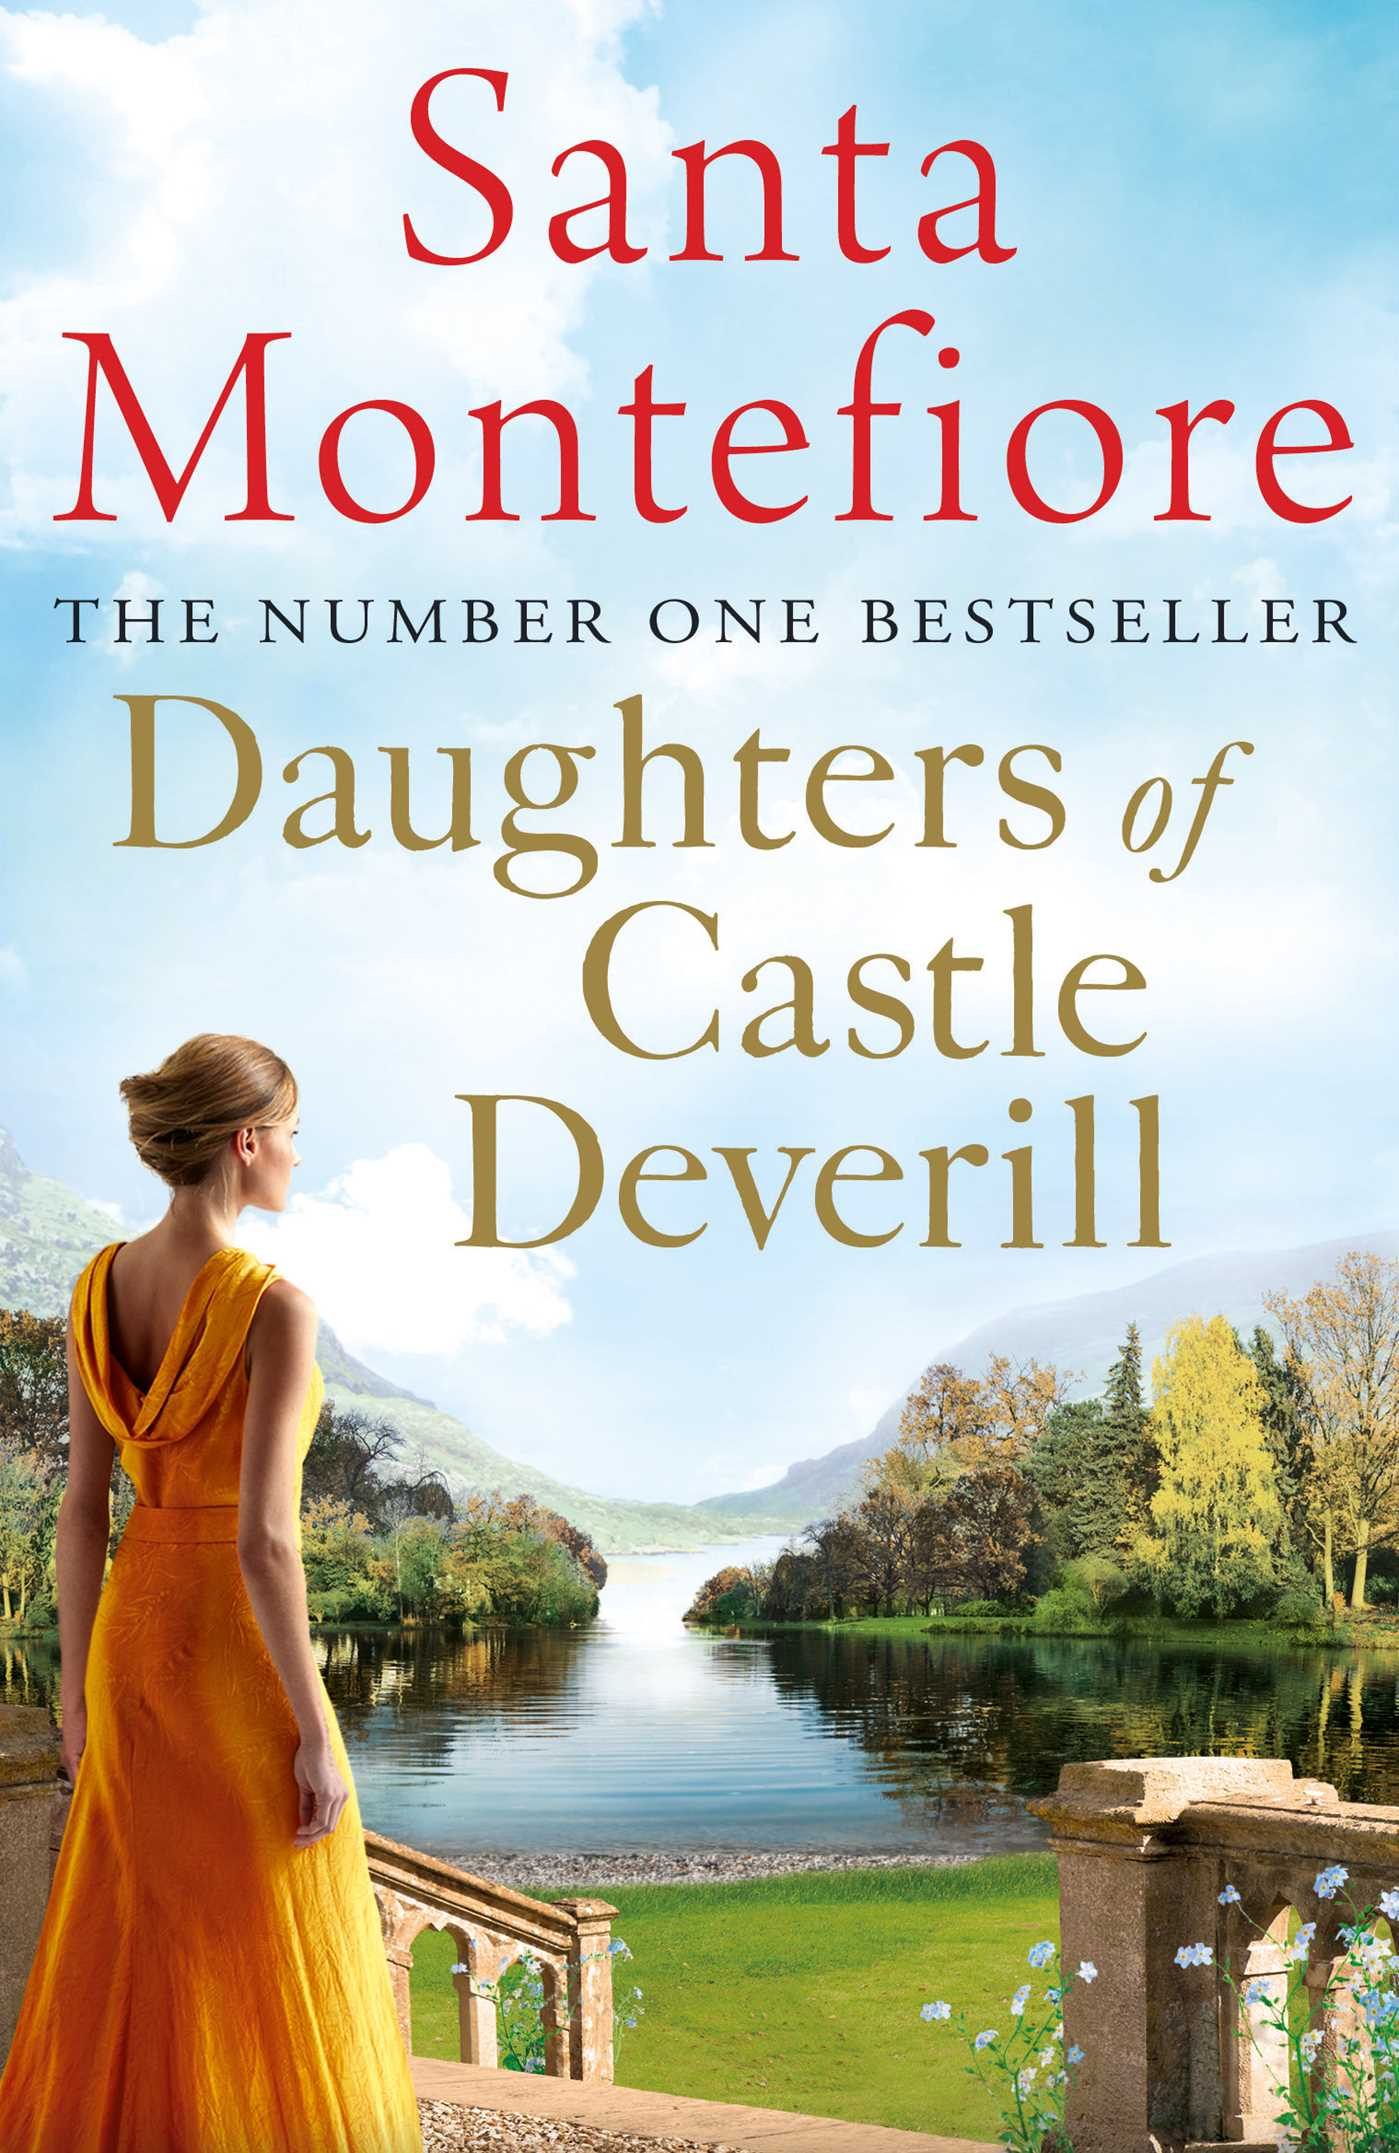 Daughters of castle deverill 9781471135903 hr